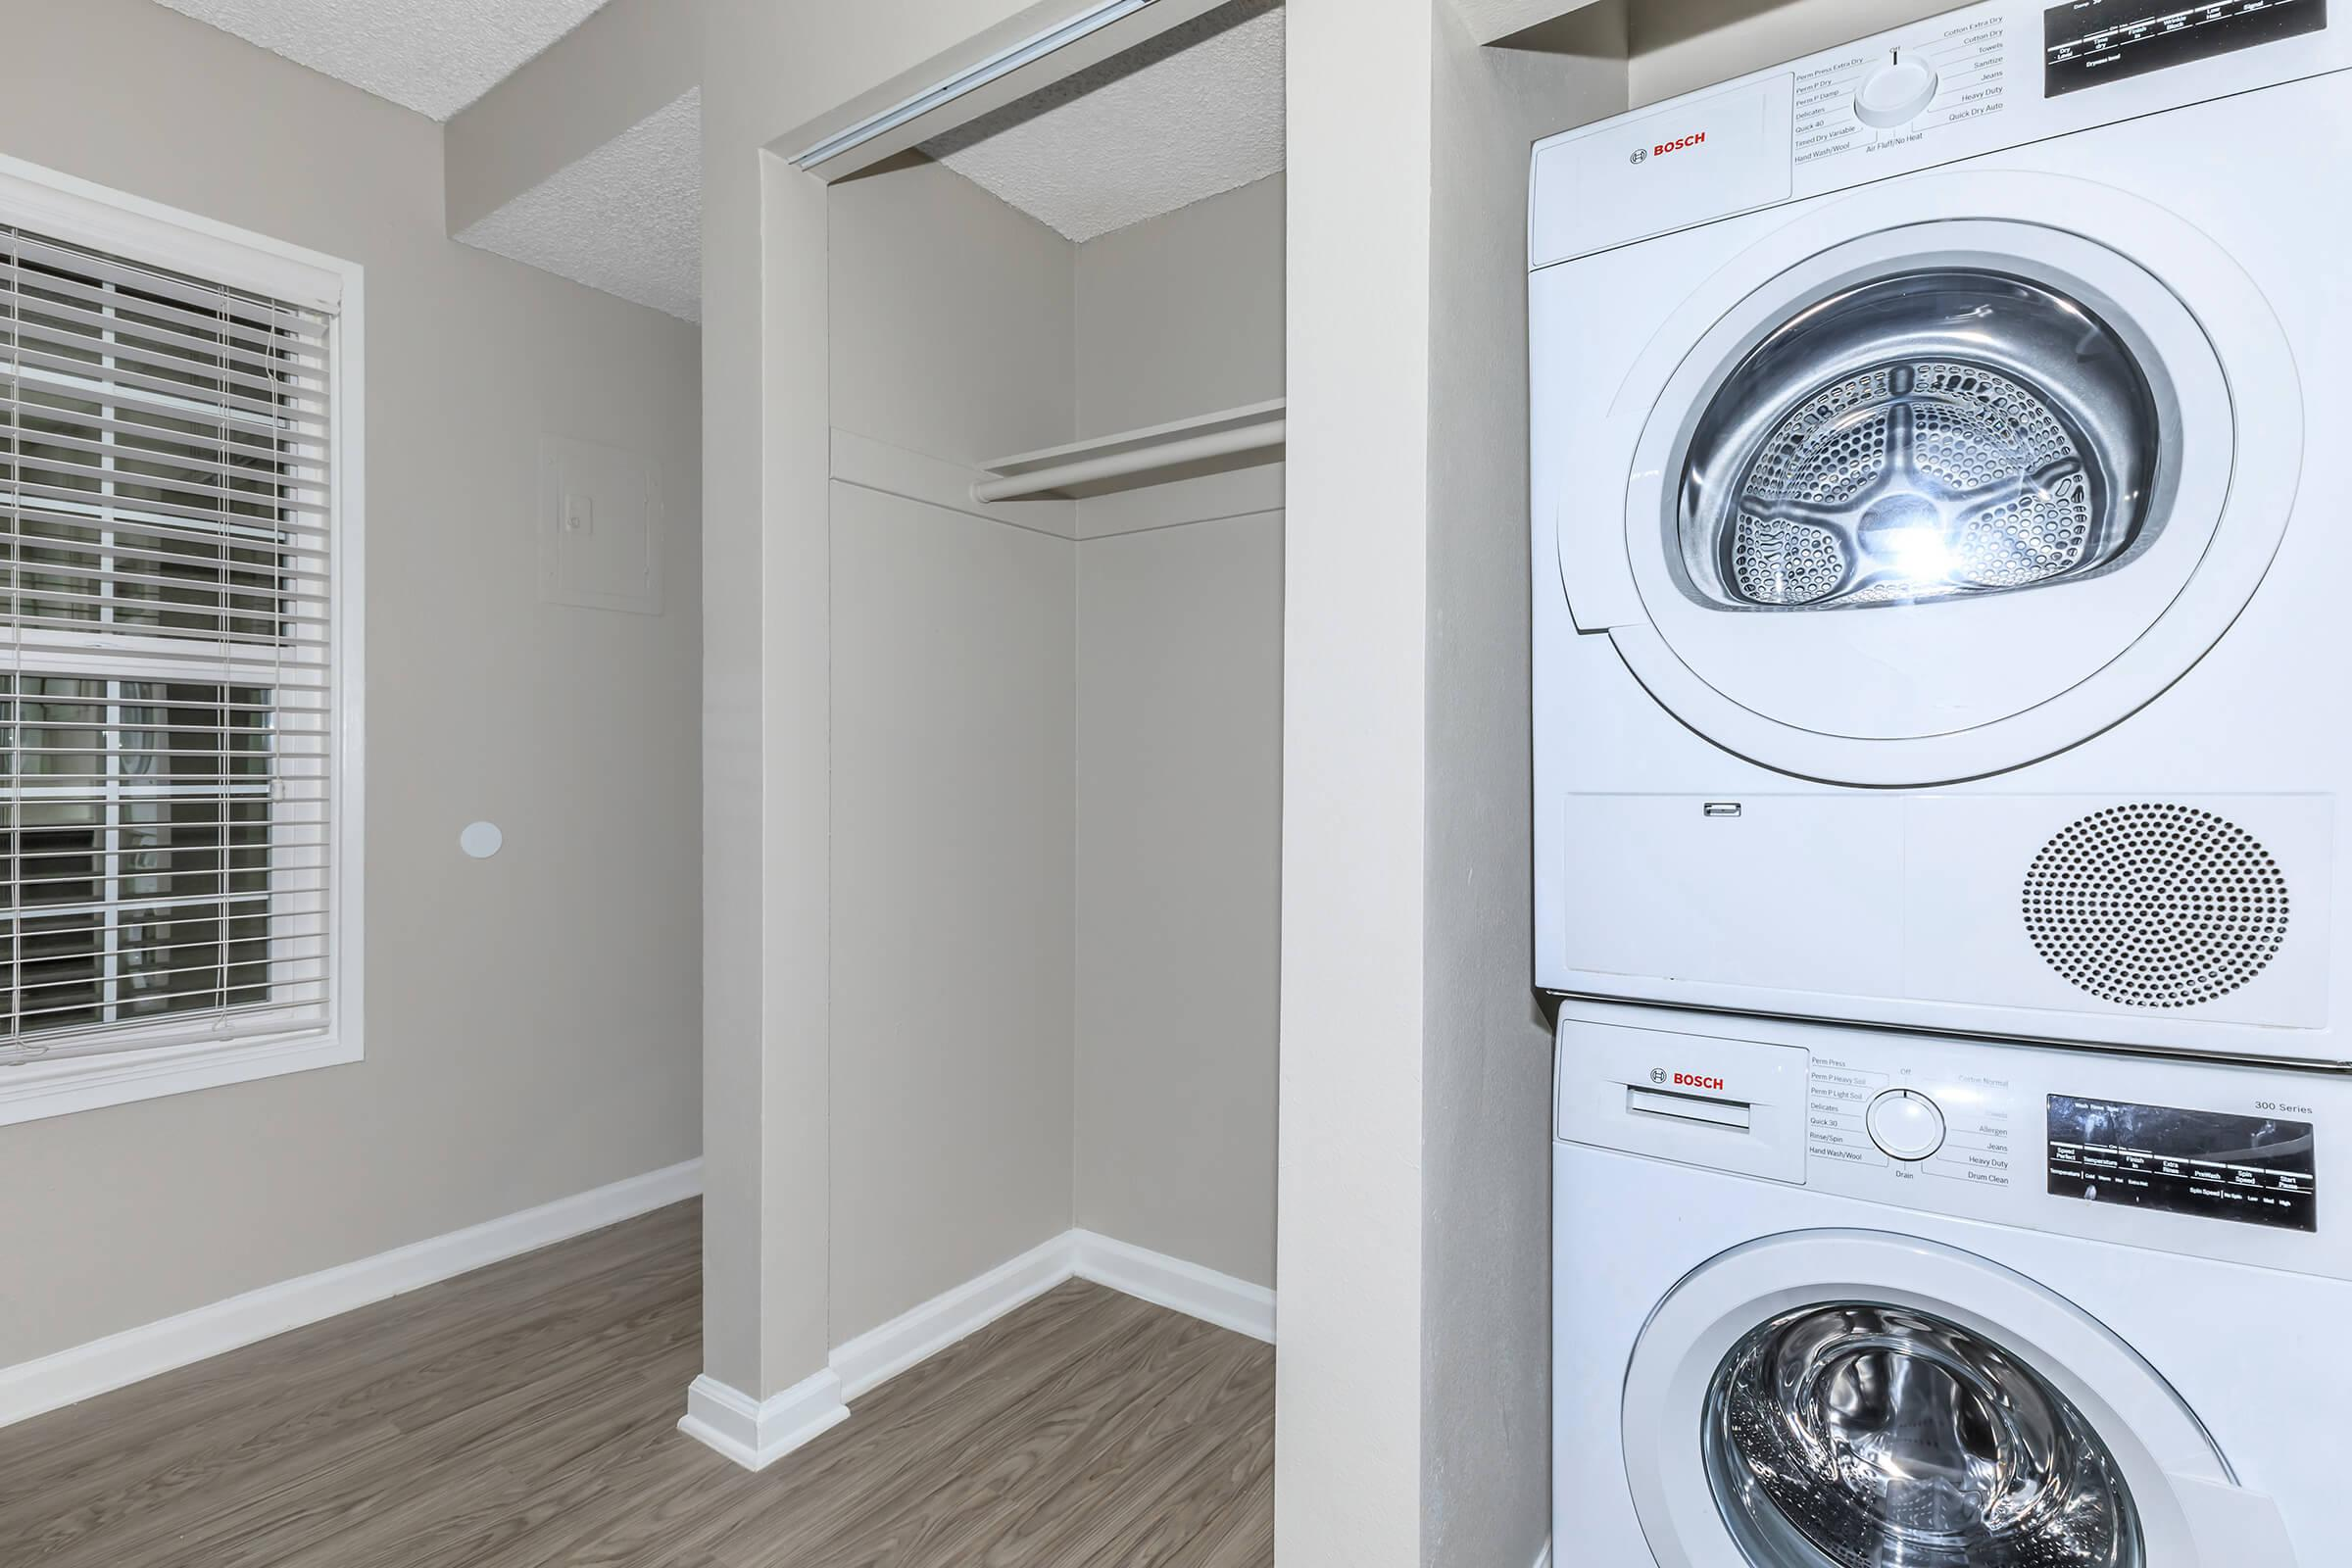 Laundry Room at The Lake in Fullerton, CA